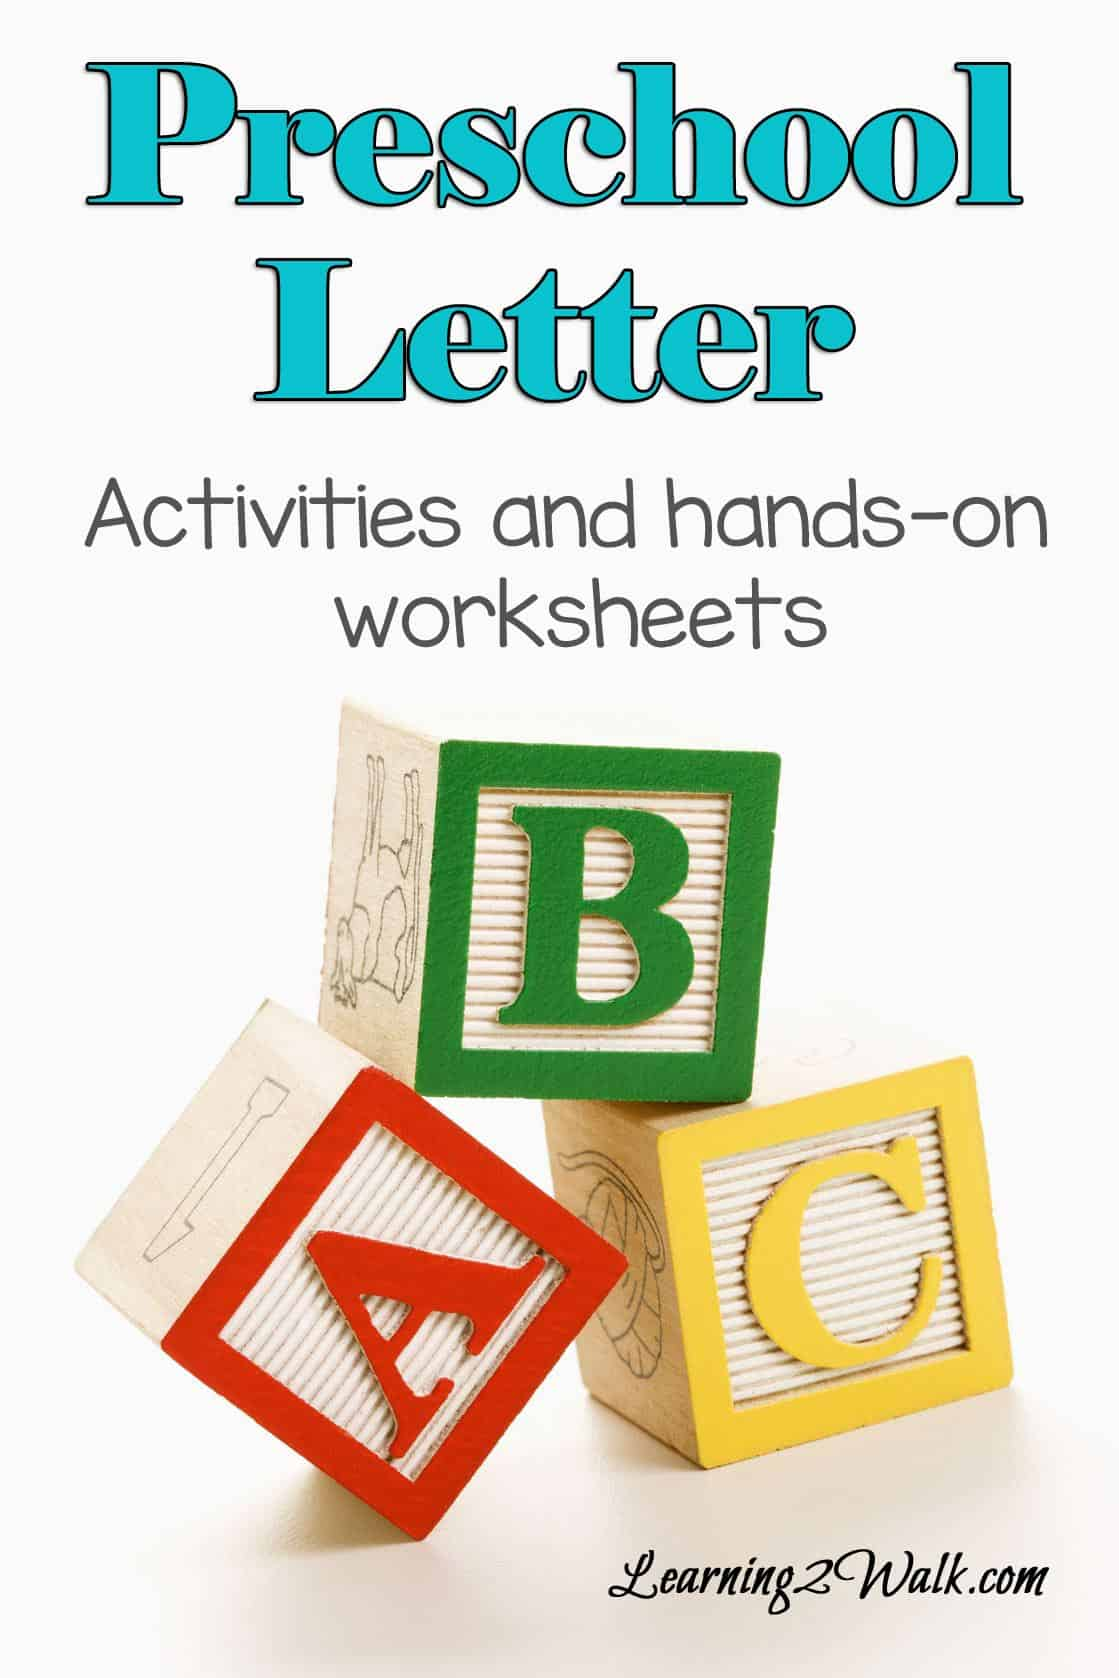 finding enough preschool letter worksheets or even preschool letter activities can be hard especially if you